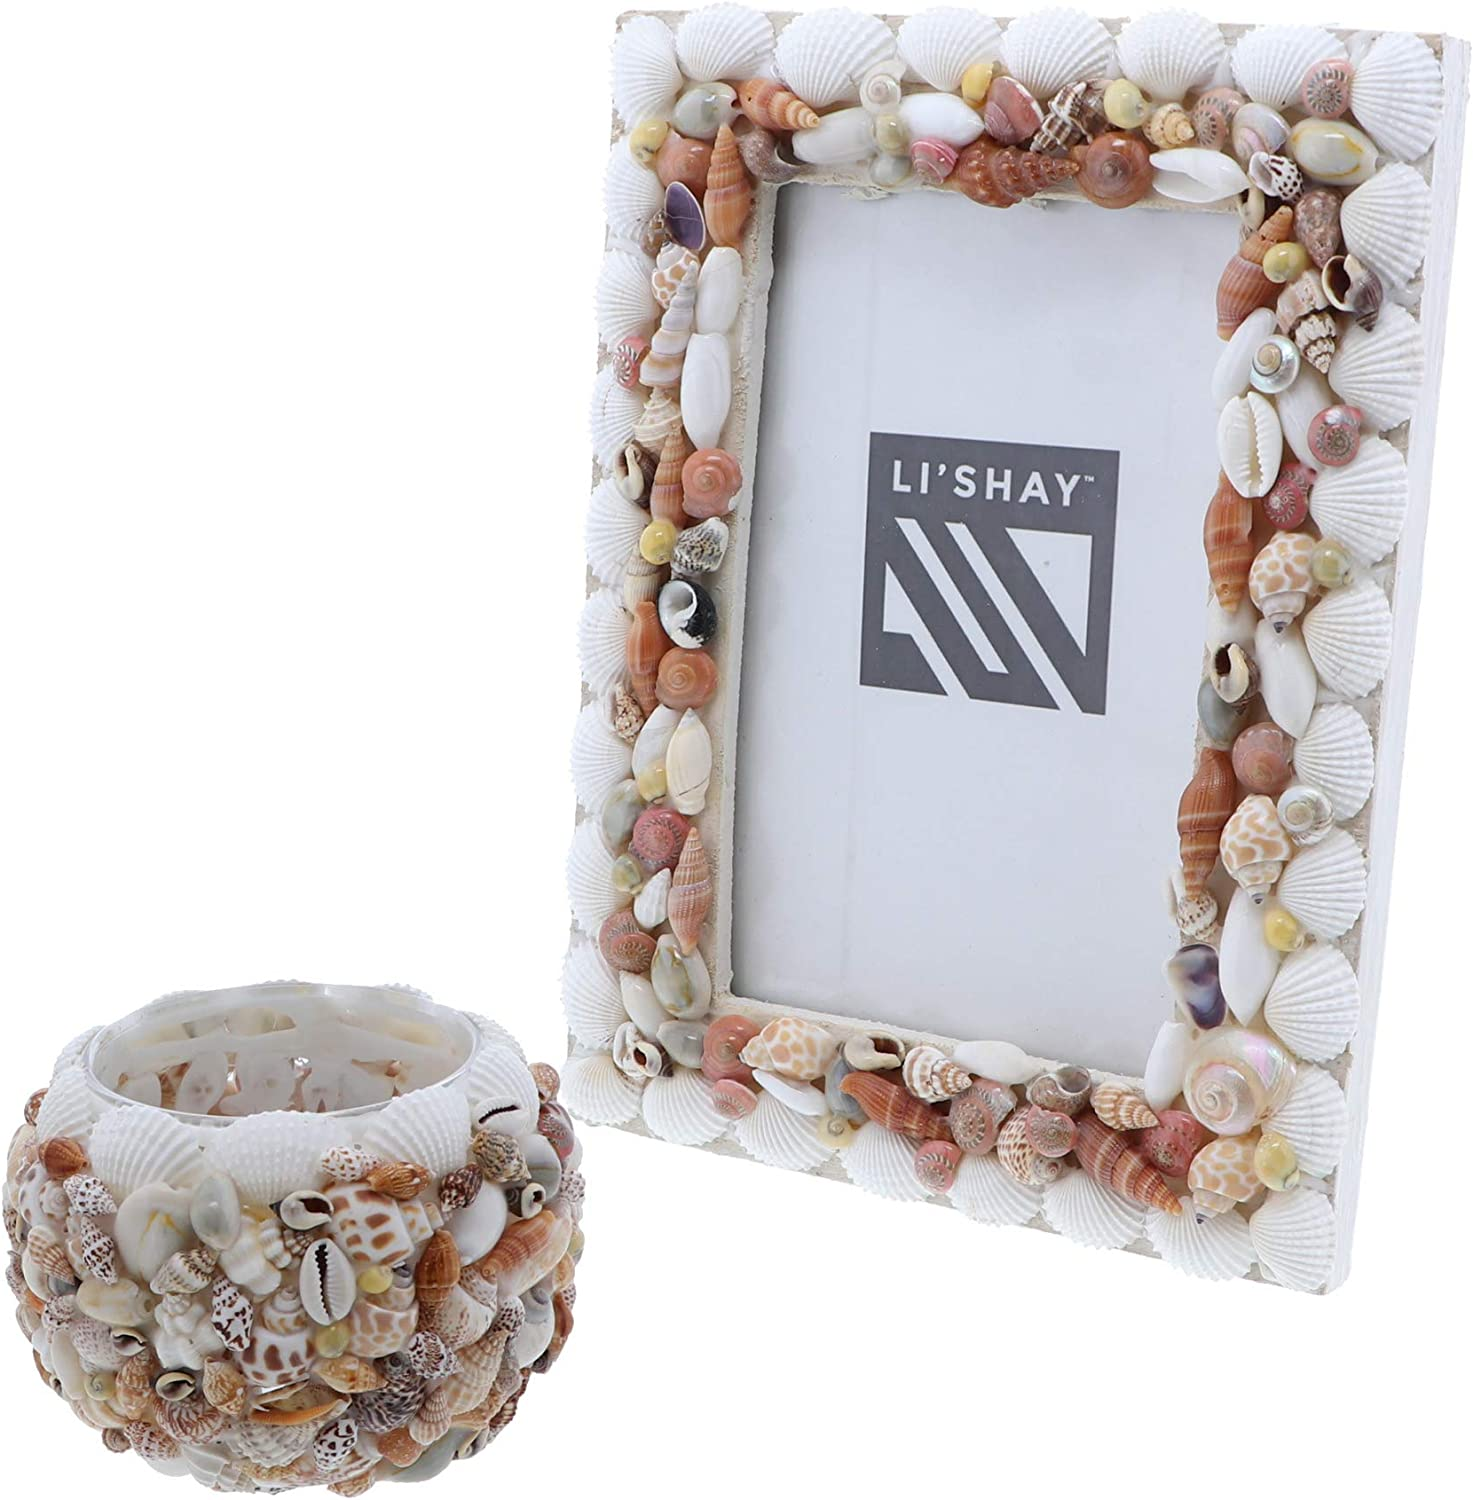 Li'Shay Picture Frame with Mixed Shells & Candle Holder with Seashells Home Décor Set